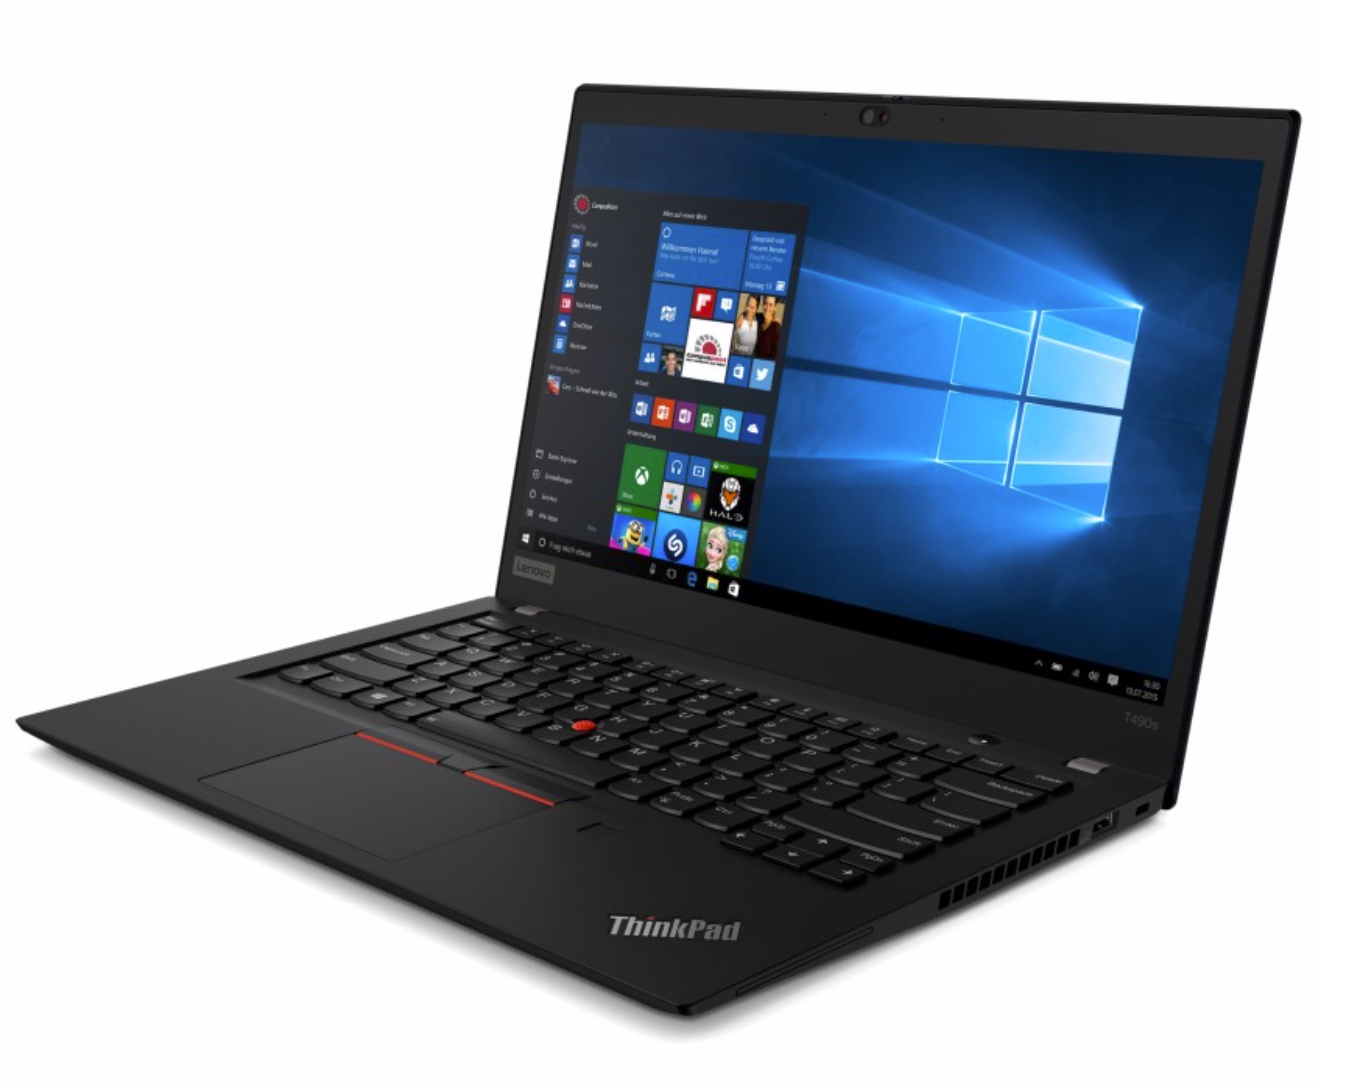 Just arrived: ThinkPad T490s and X390 in review